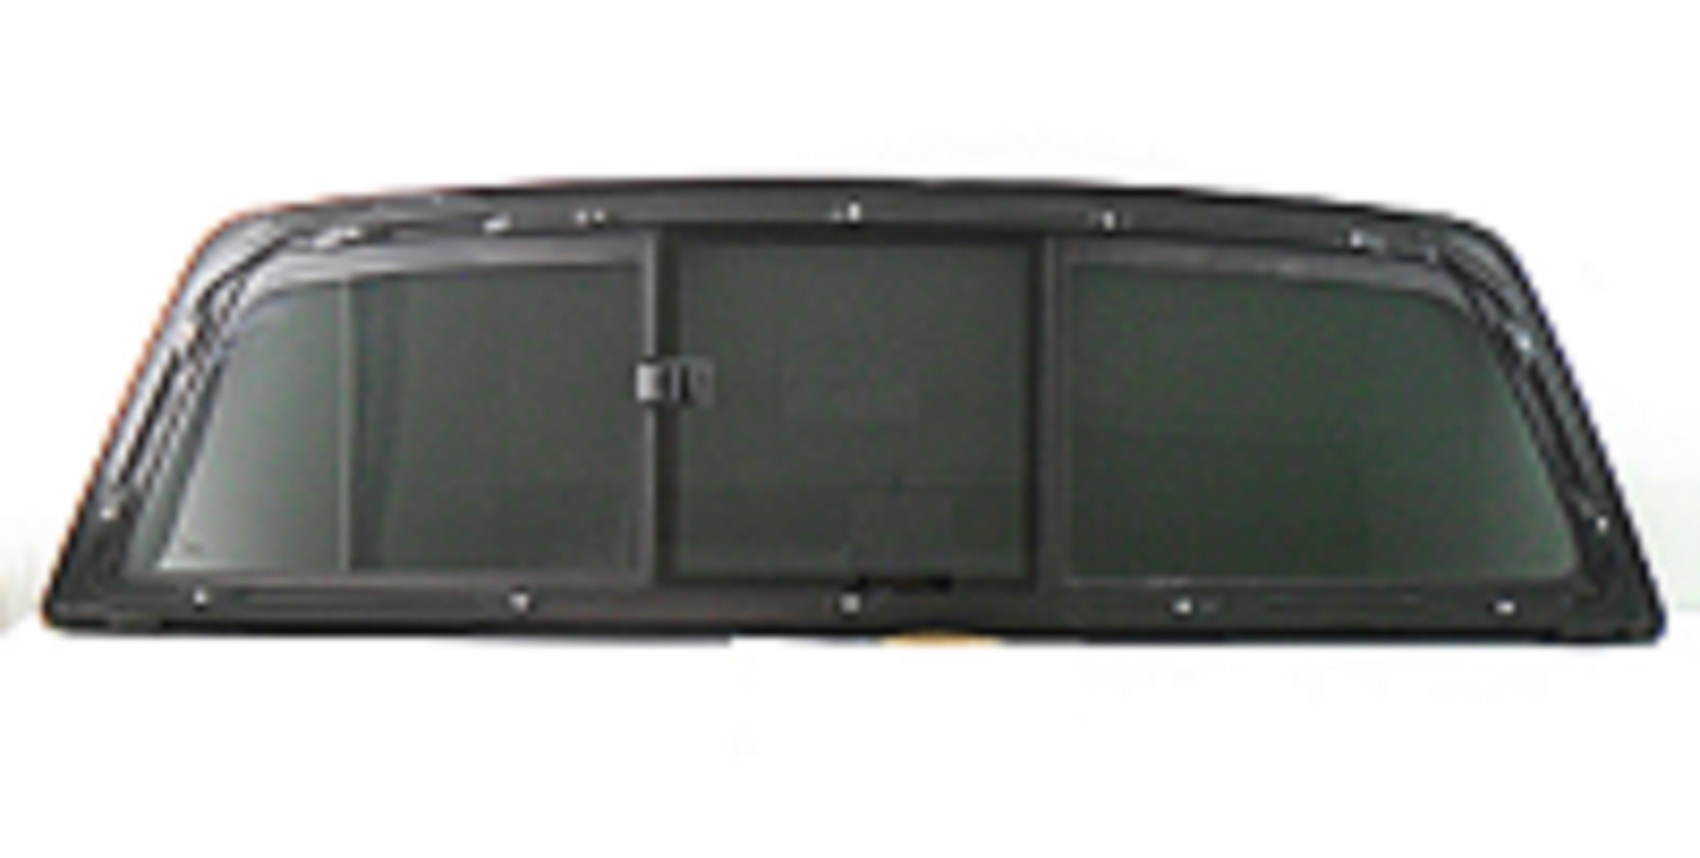 2004 F150 Crew Cab >> Back Window Glass Ford F150 4 Door Crew Cab 2004-2014 Slider Assembly 3 Piece